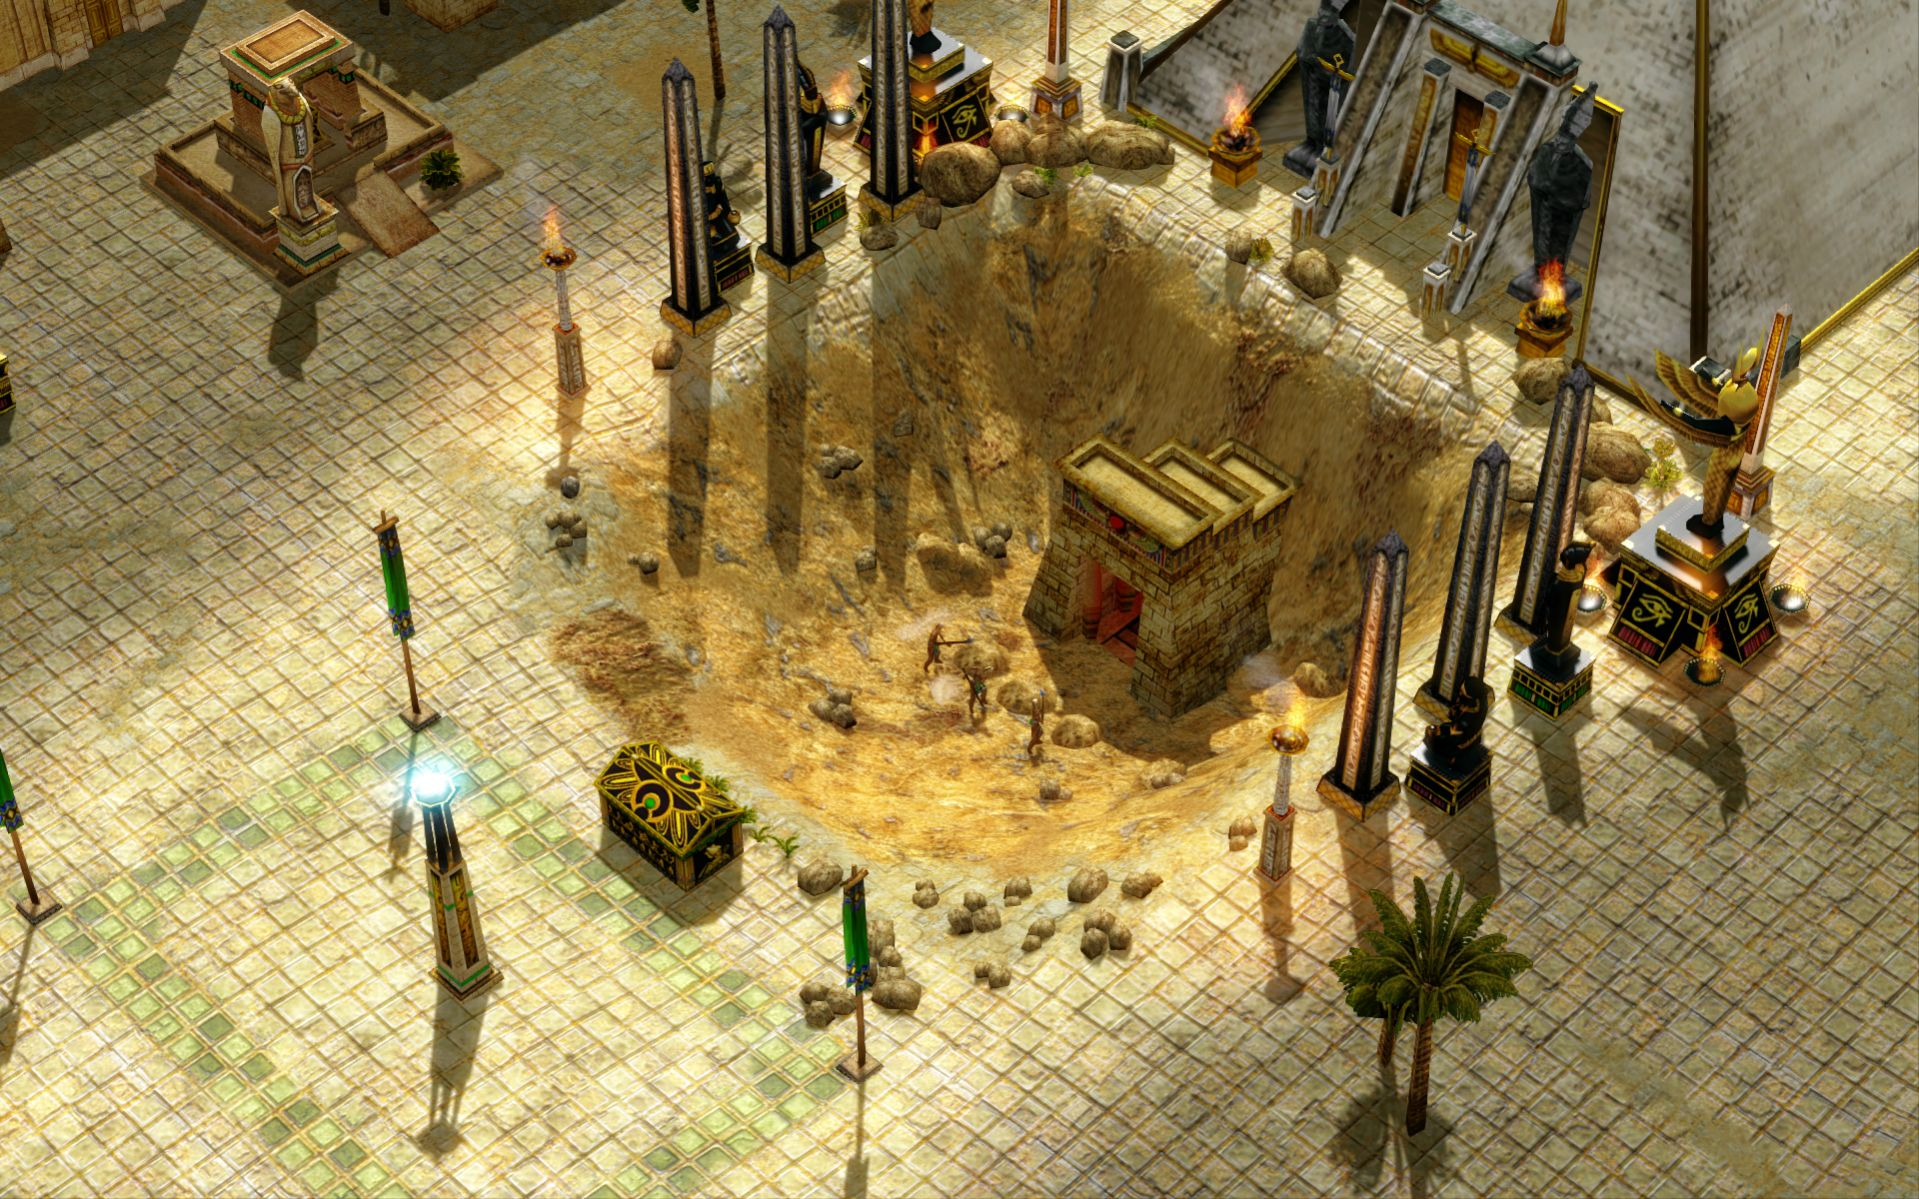 Screenshot for the game Age of Mythology: Extended Edition [v 1.8.2722] (2014) РС | RePack от R.G. Механики